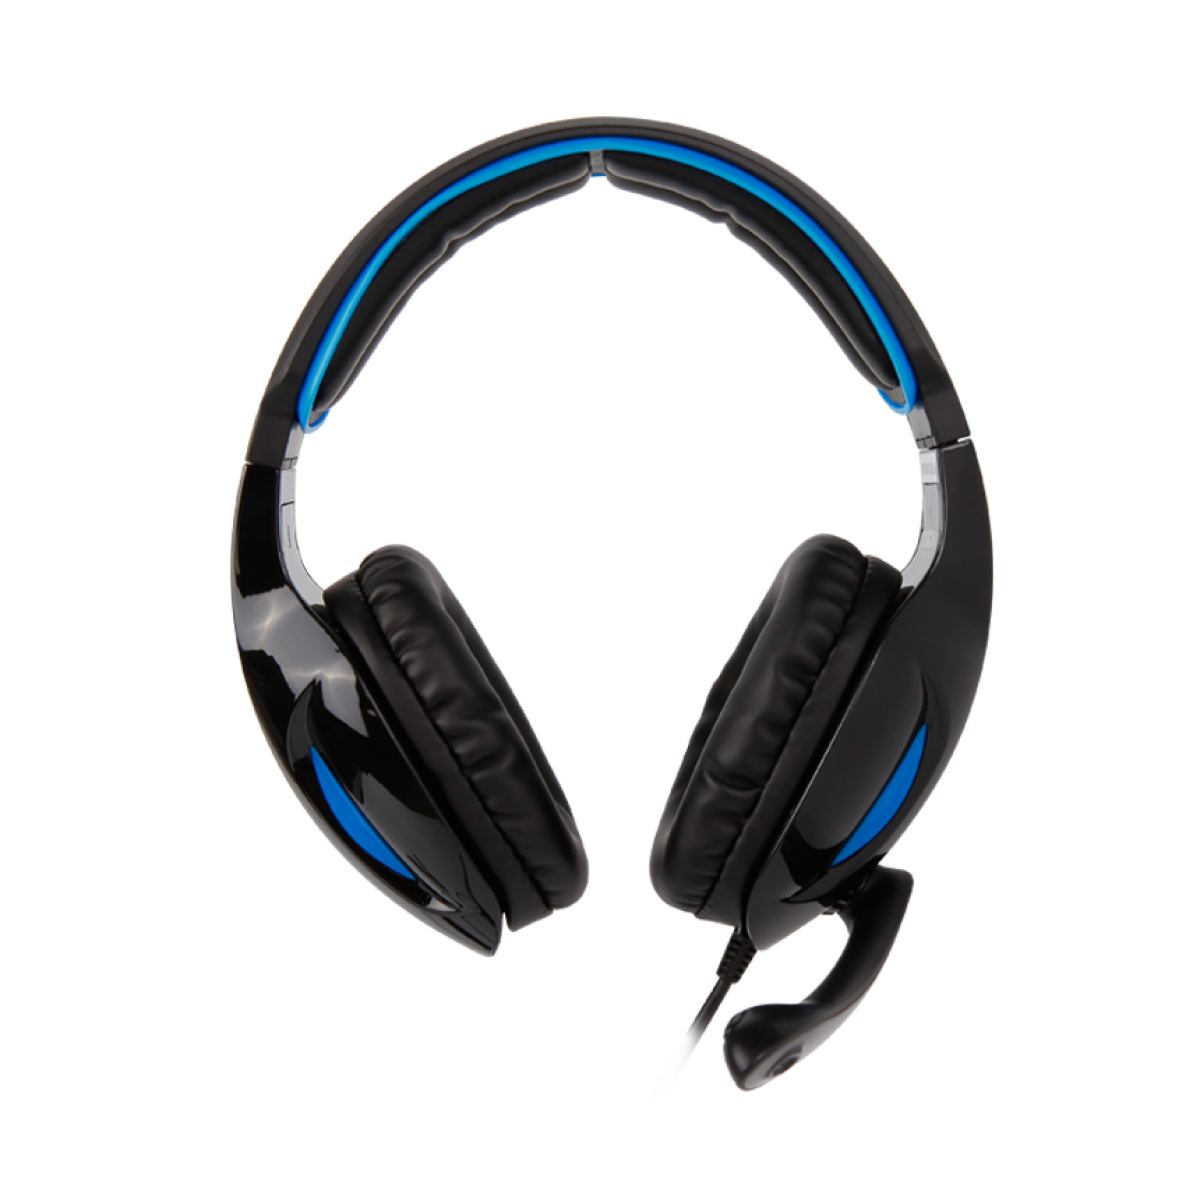 Headset Gamer Sades Sa-902 Snuk, Surround 7.1, Black/Blue, Sa-902